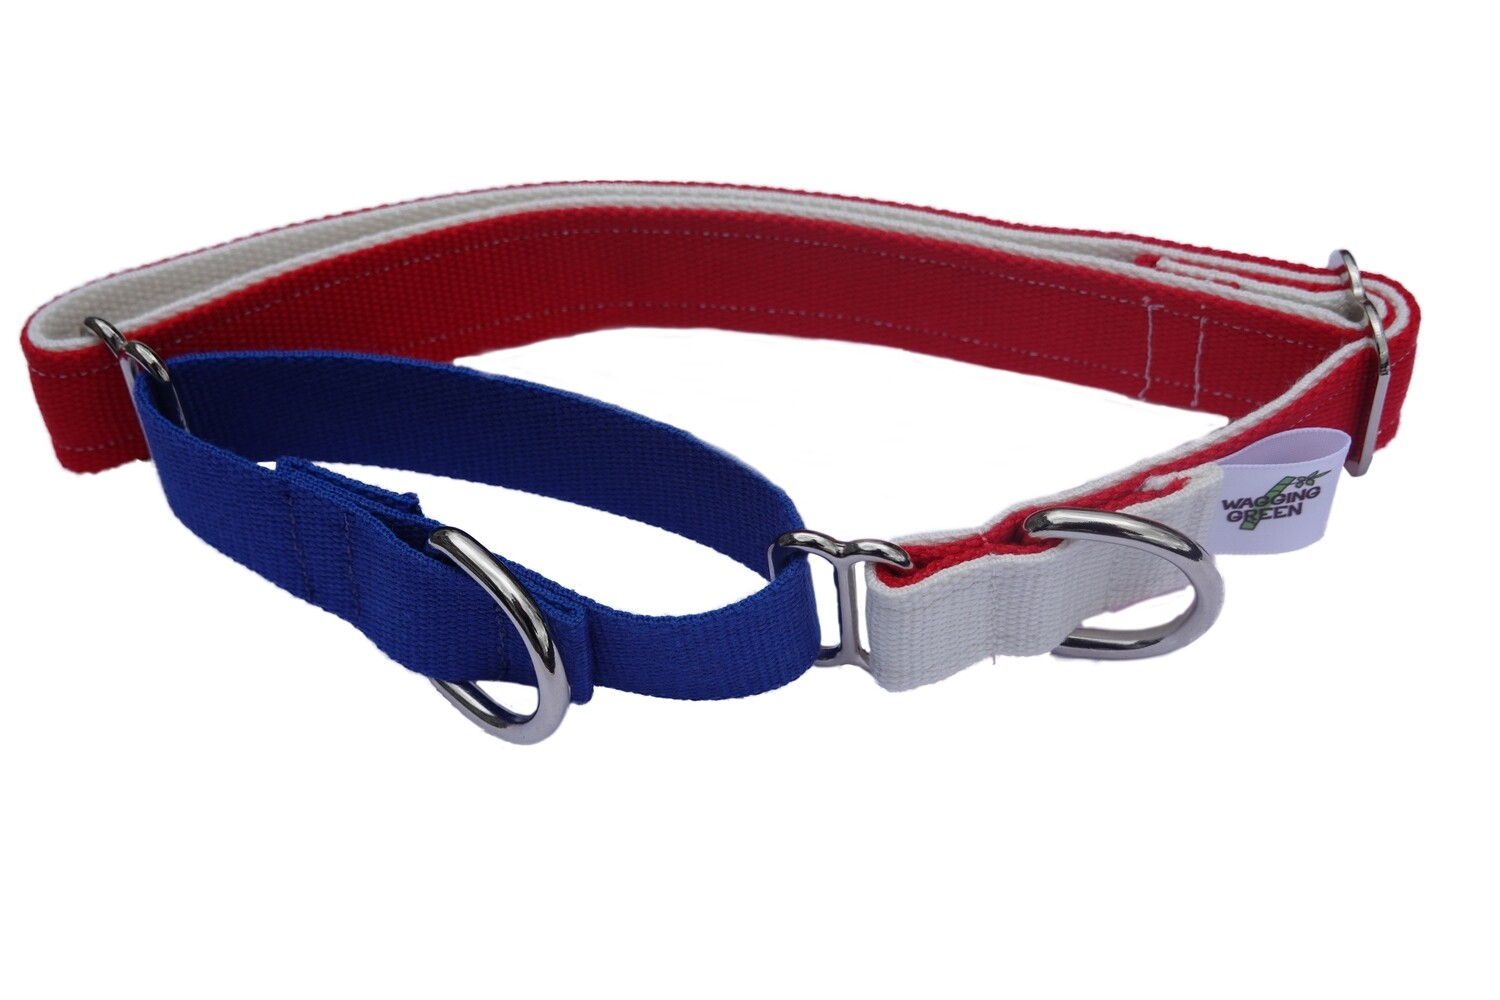 Eco Friendly Bamboo Double Layer Martingale Dog Collar - Red, White, & Blue